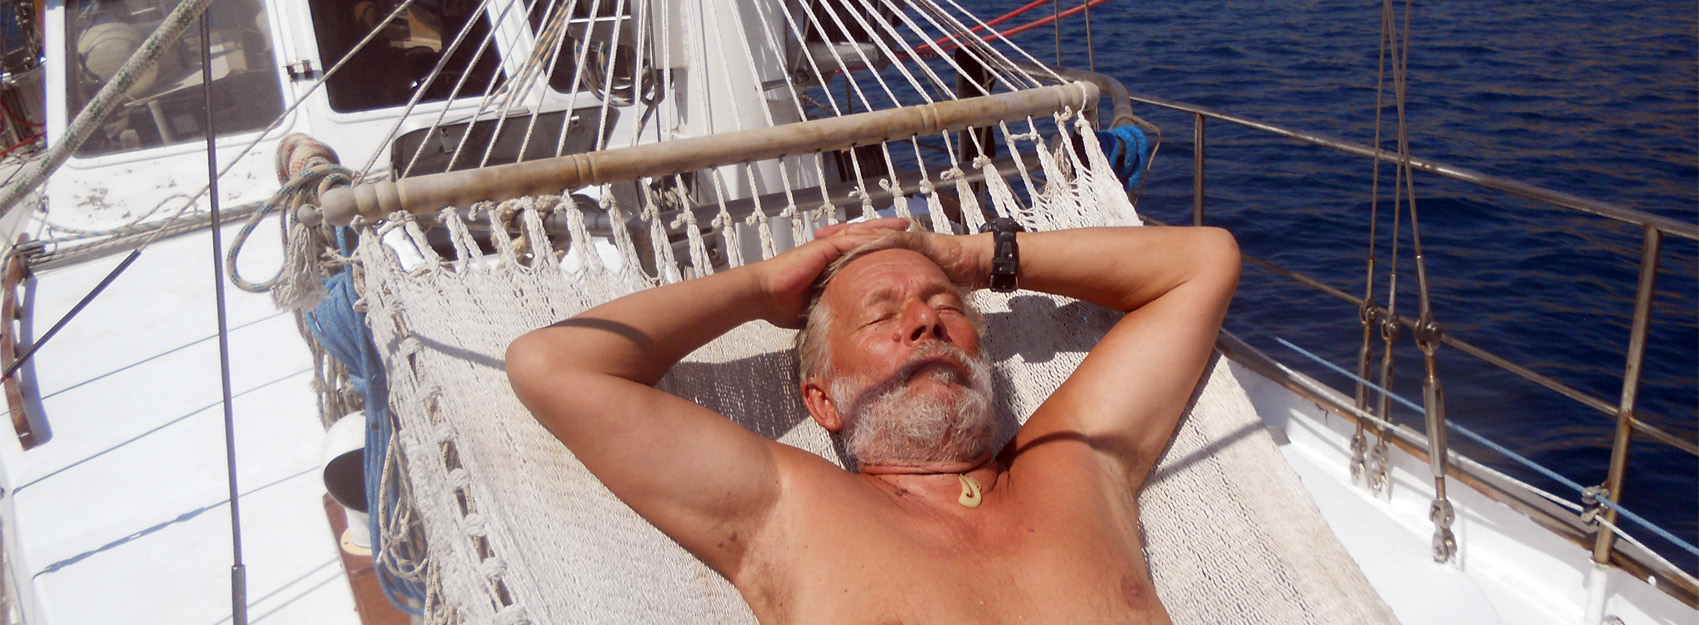 Sailing is a hard life